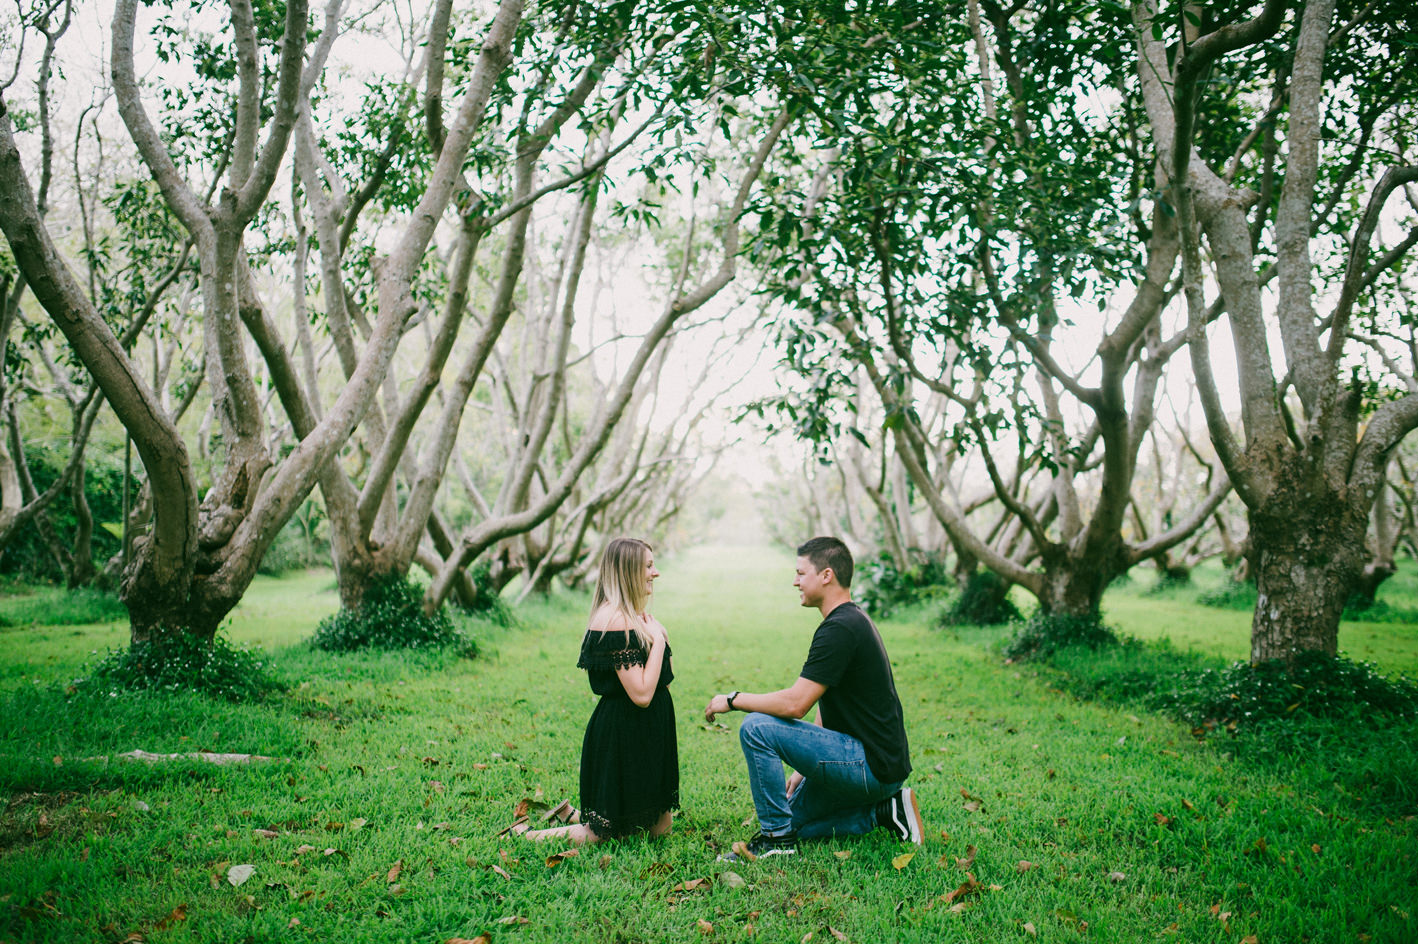 022-proposal-dan-ash_sophie-baker-photography